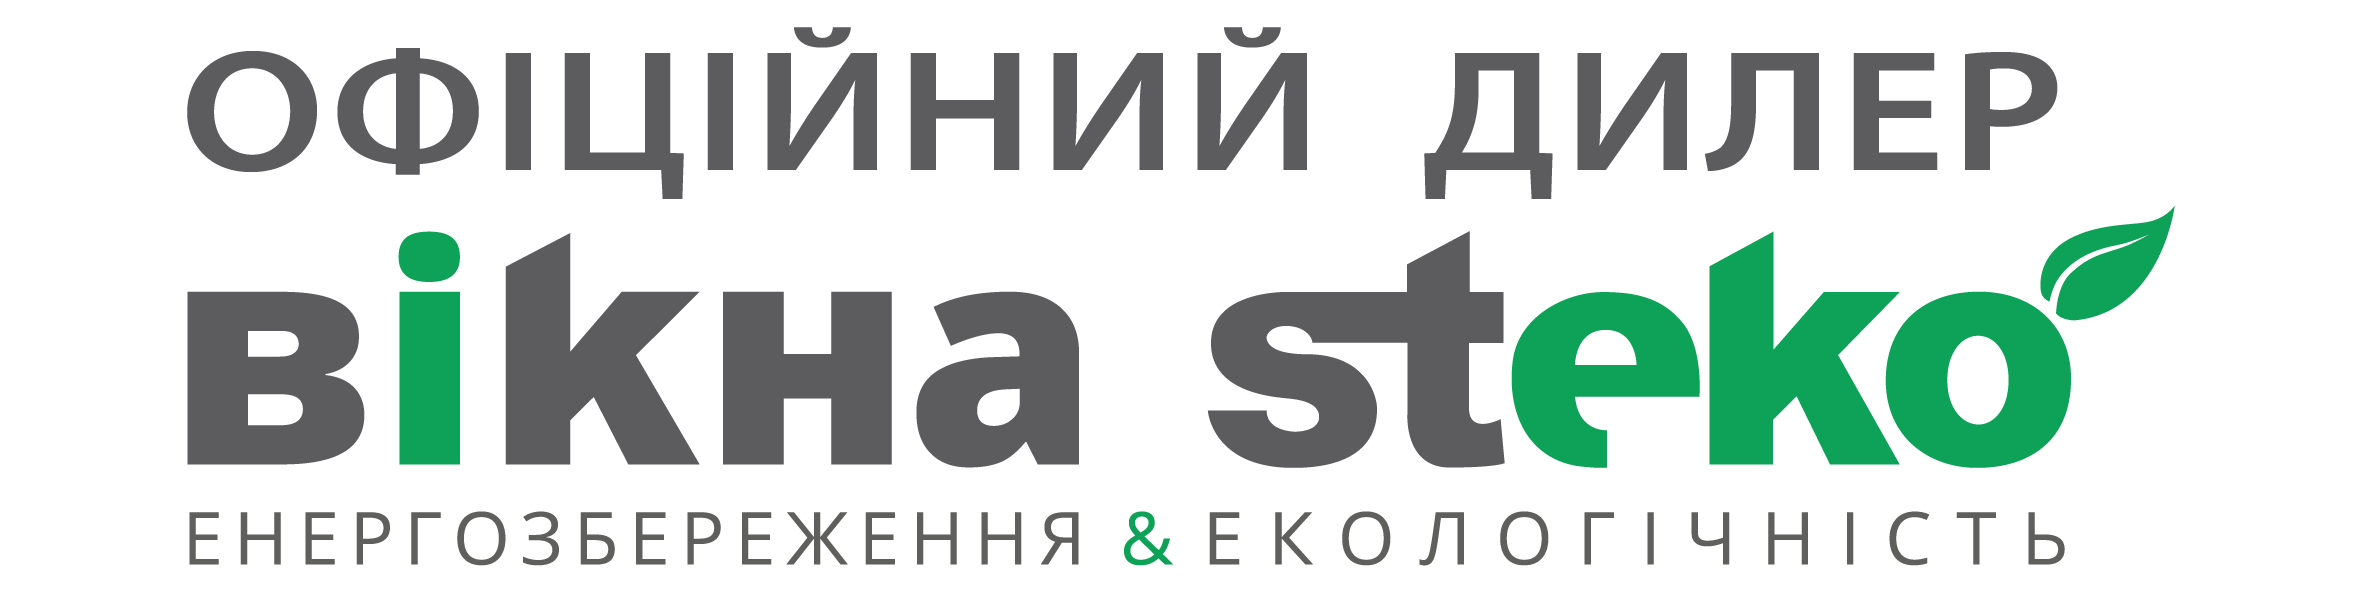 logo-steko-dealer2017